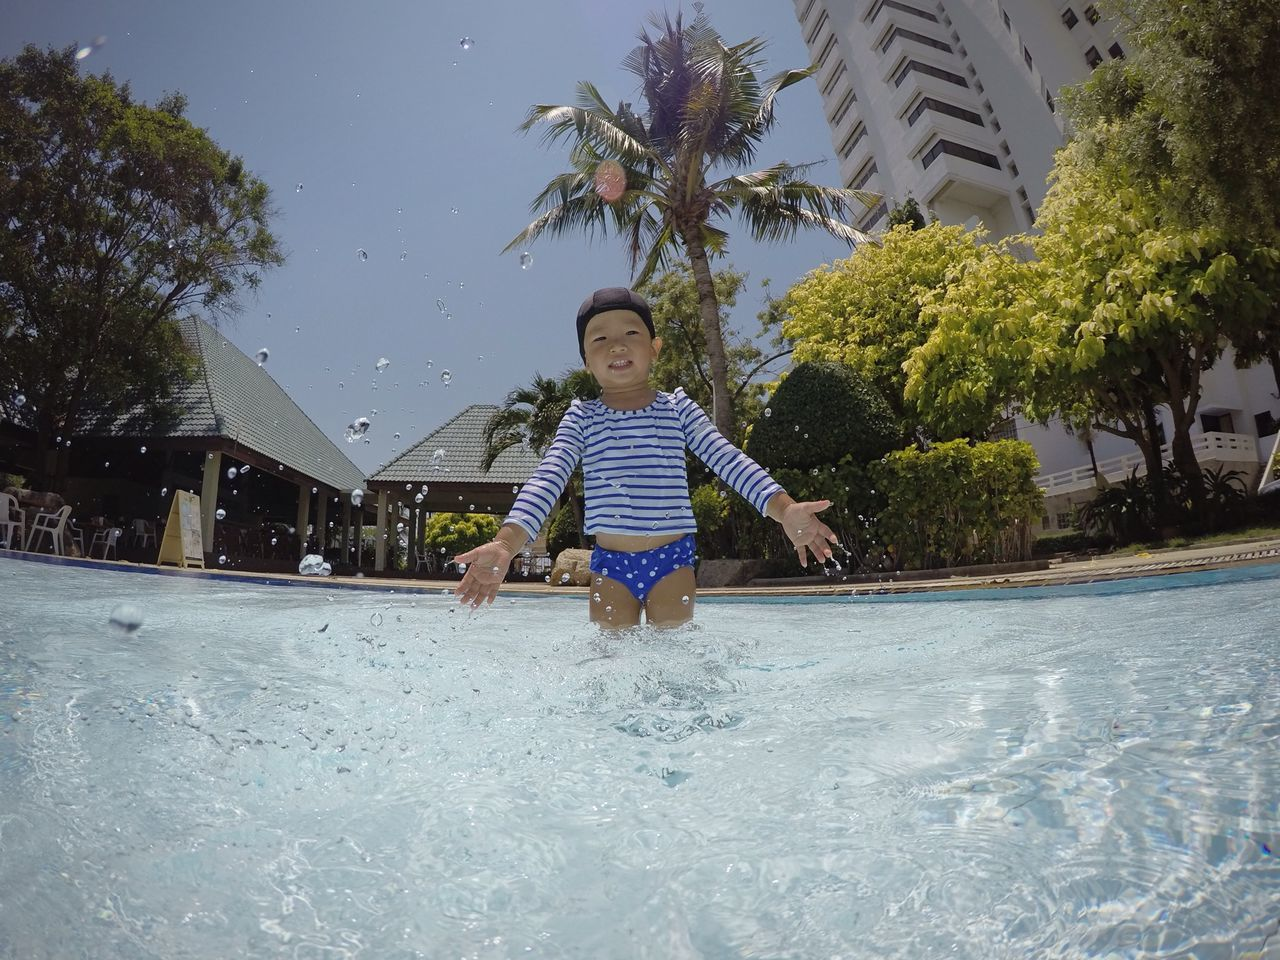 Marisa   April 04, 2015. Everyday Lives Everyday Joy The Human Condition GoPrography Gopro Malidiary Open Edit Summer